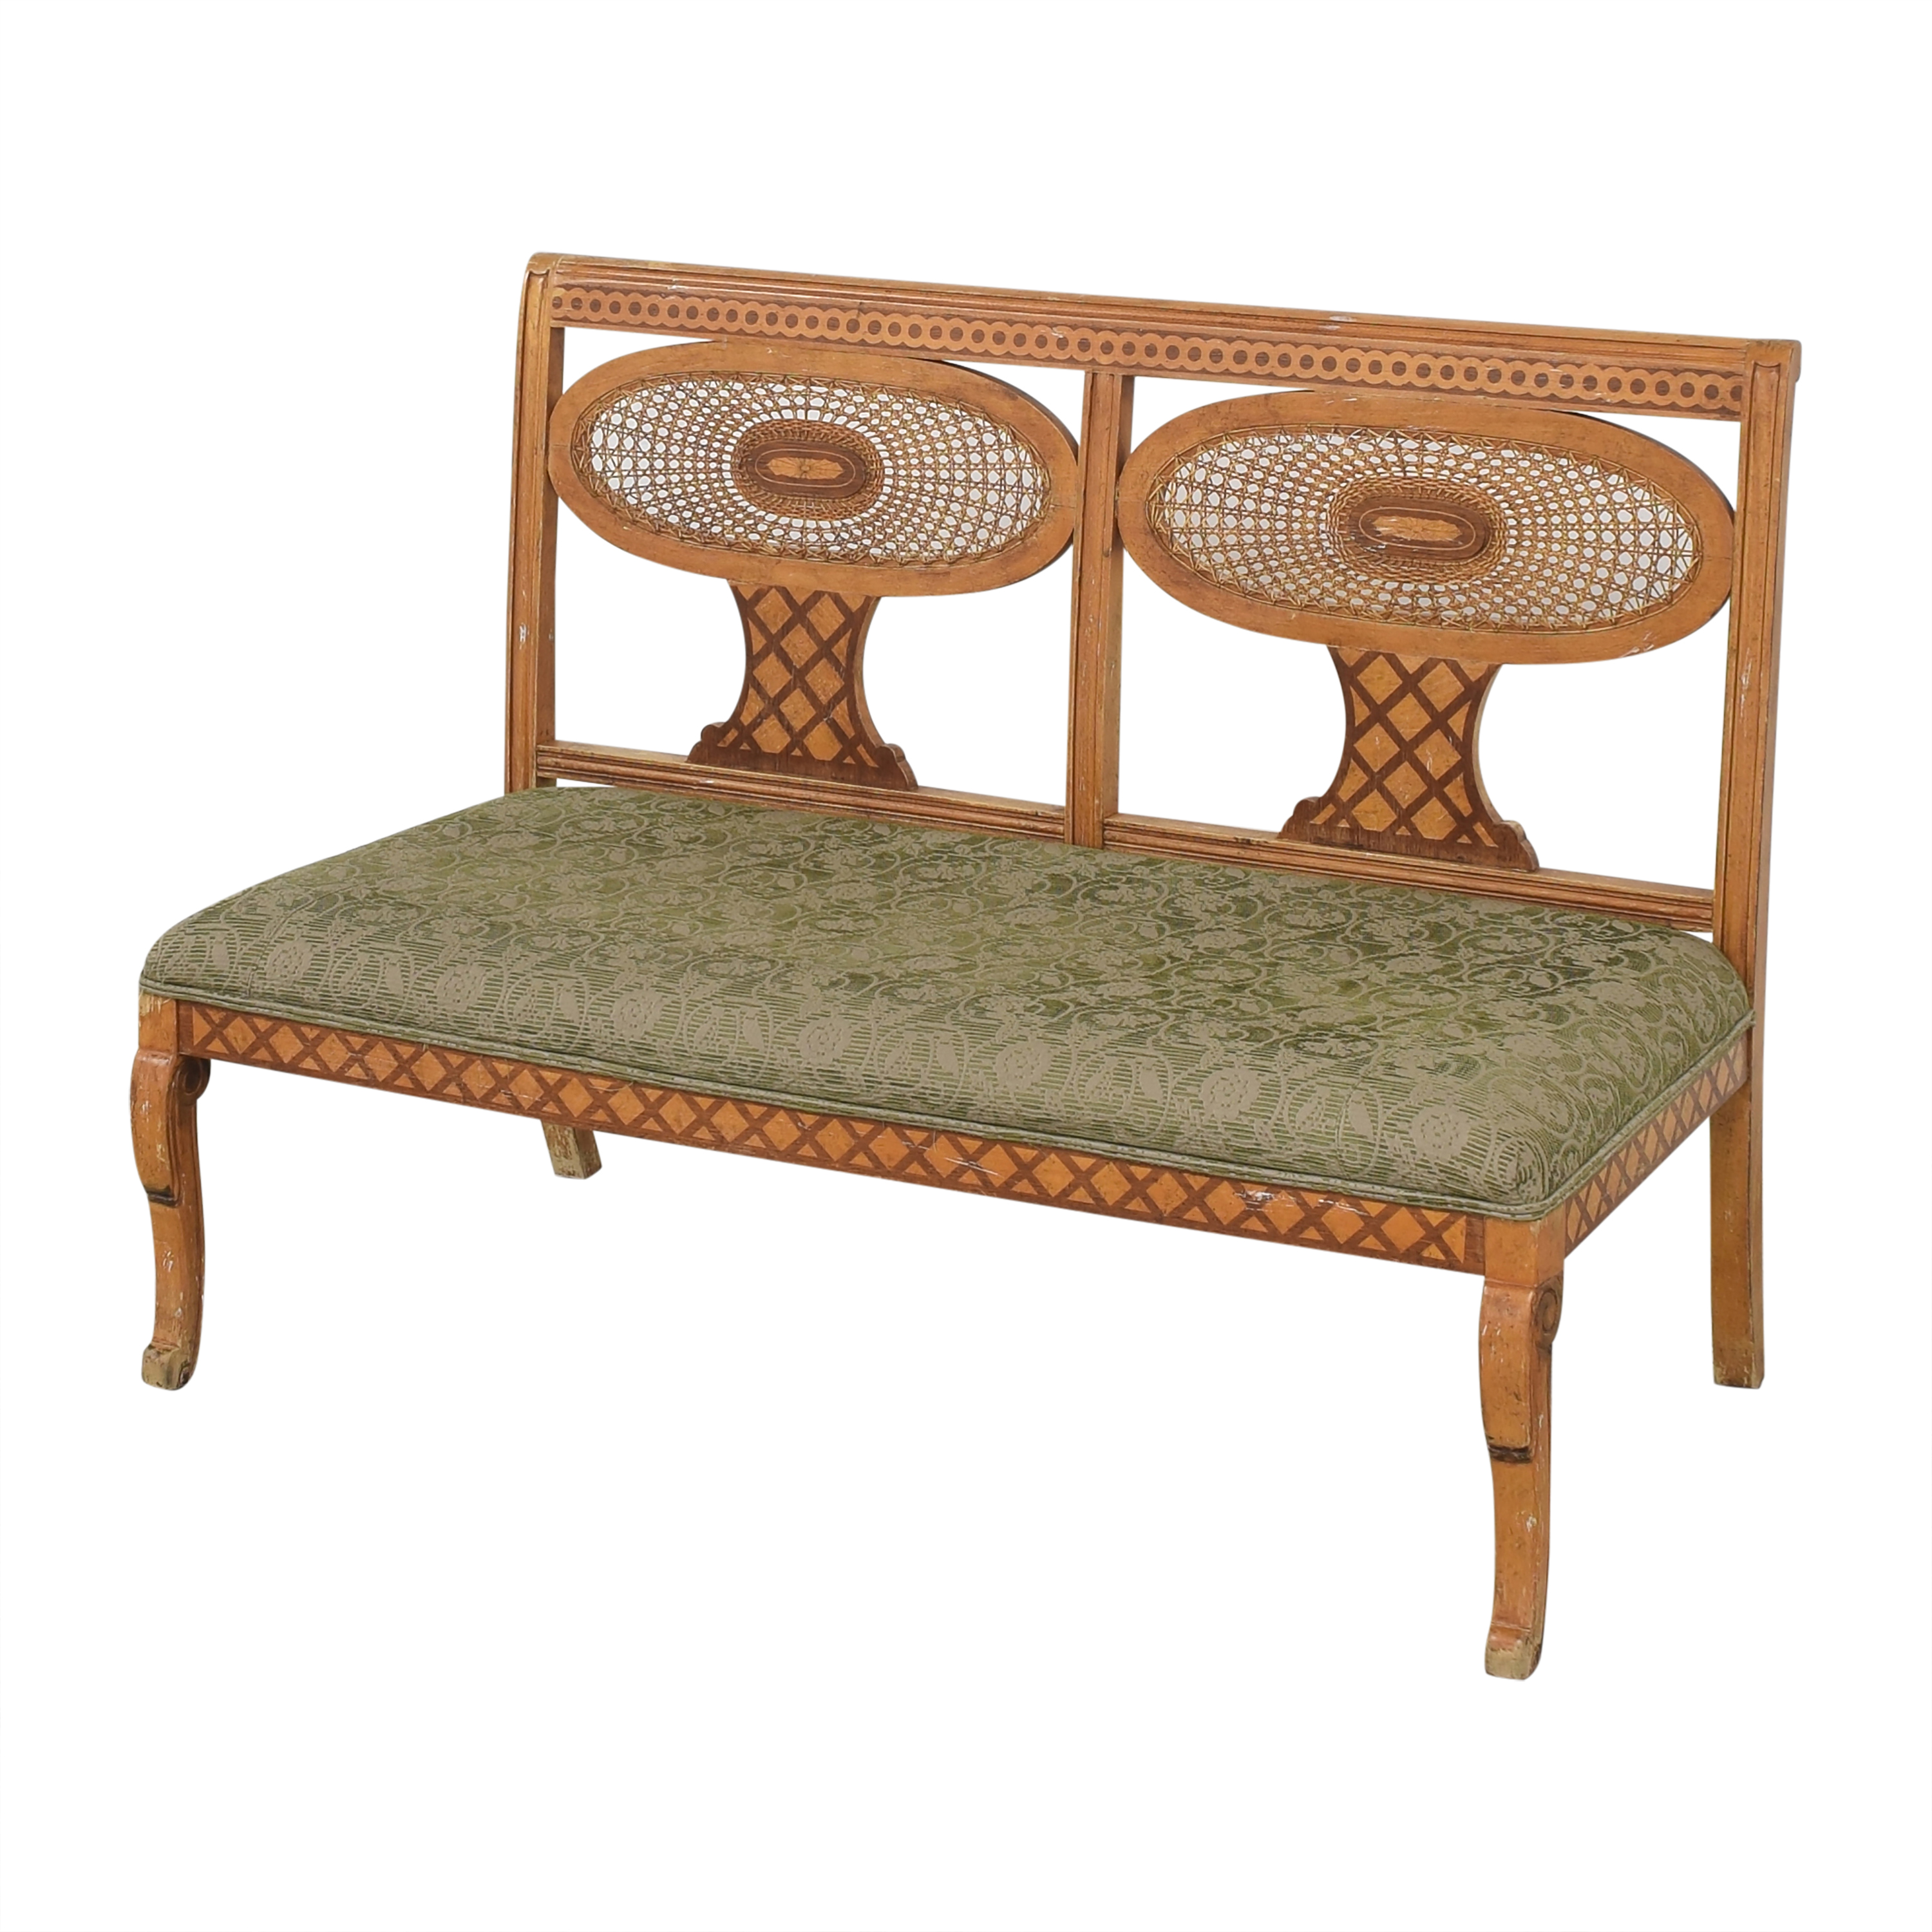 Double Medallion Back Bench on sale